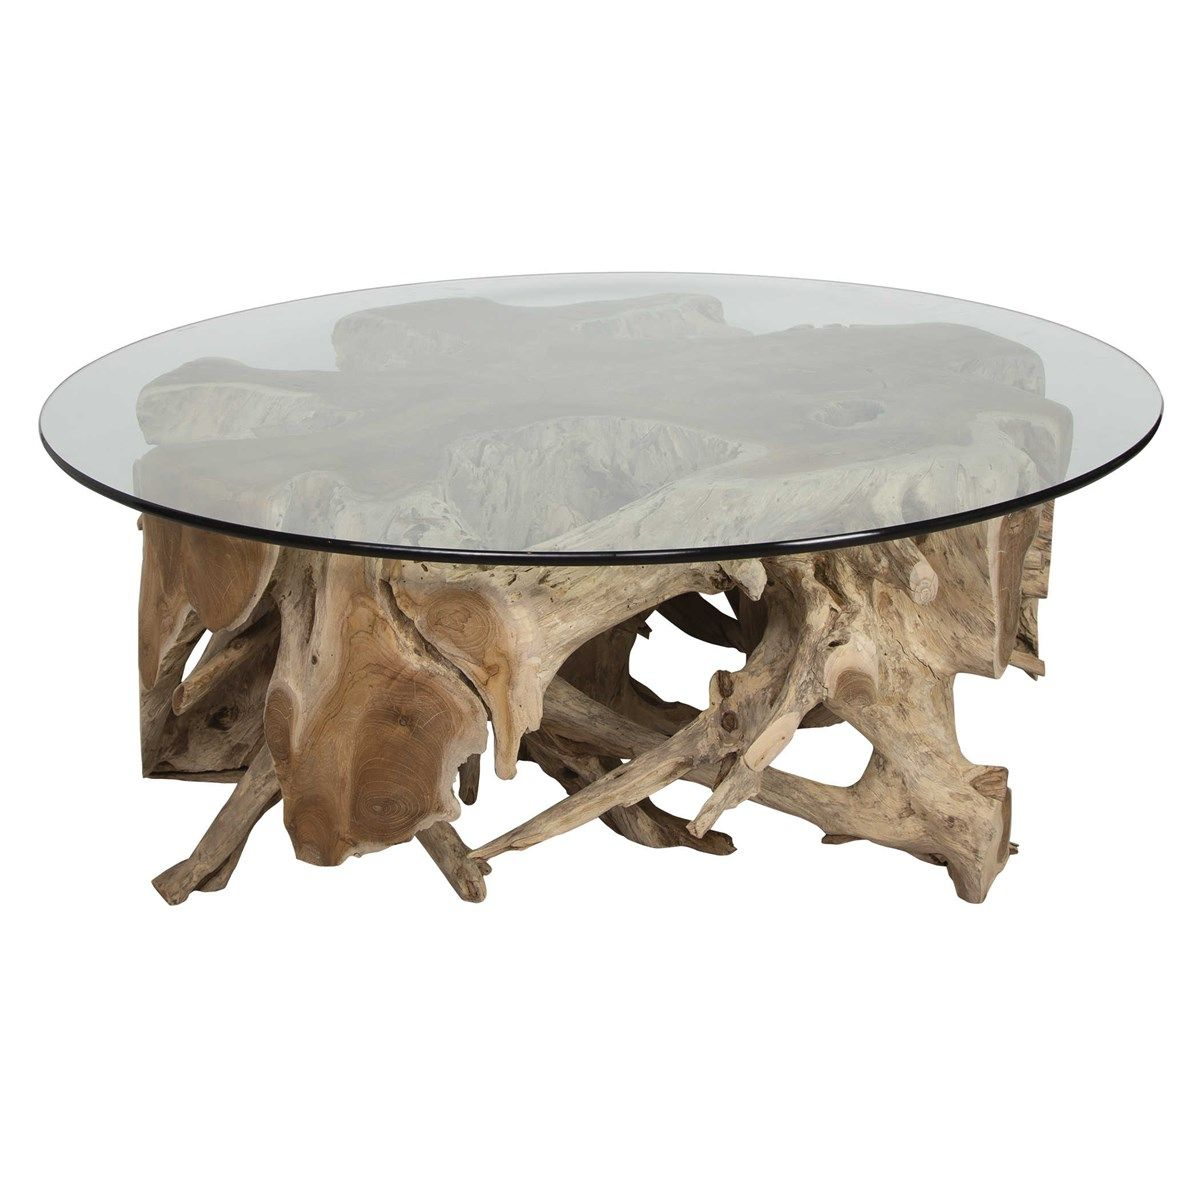 Teak Root Coffee Table Round 2 Cartons Uttermost Coffee Table Unique Coffee Table Table [ 1200 x 1200 Pixel ]